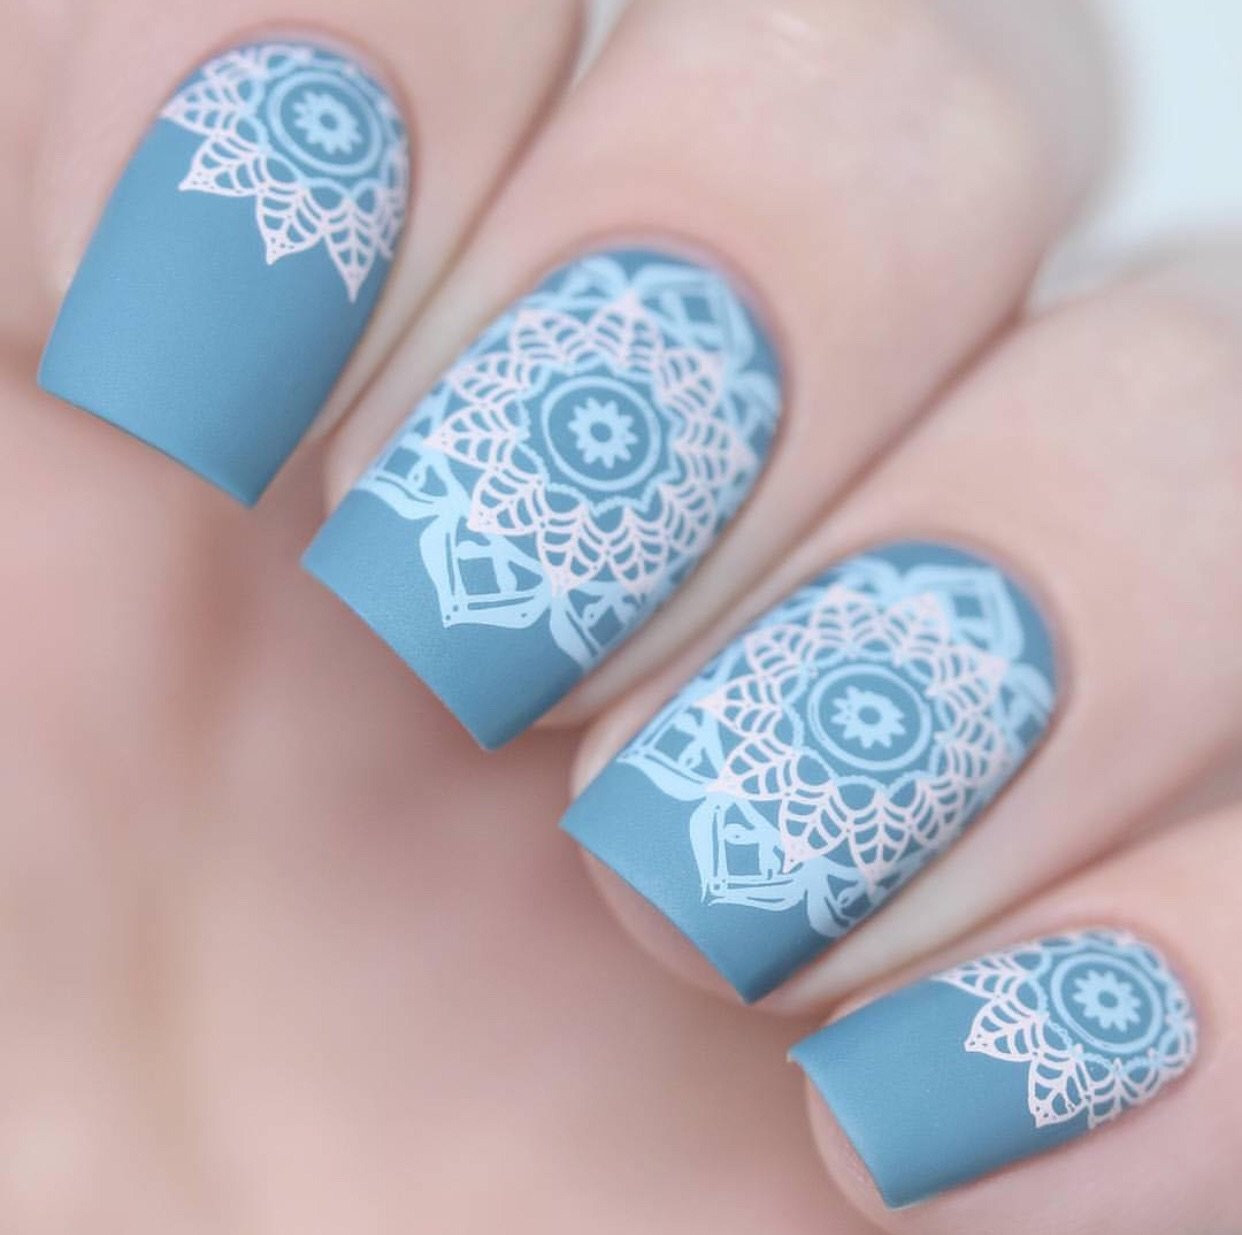 Myriad of Mandalas nail stamping plate by Clear Jelly Stamper. Available in the USA at www.lanternandwren.com.